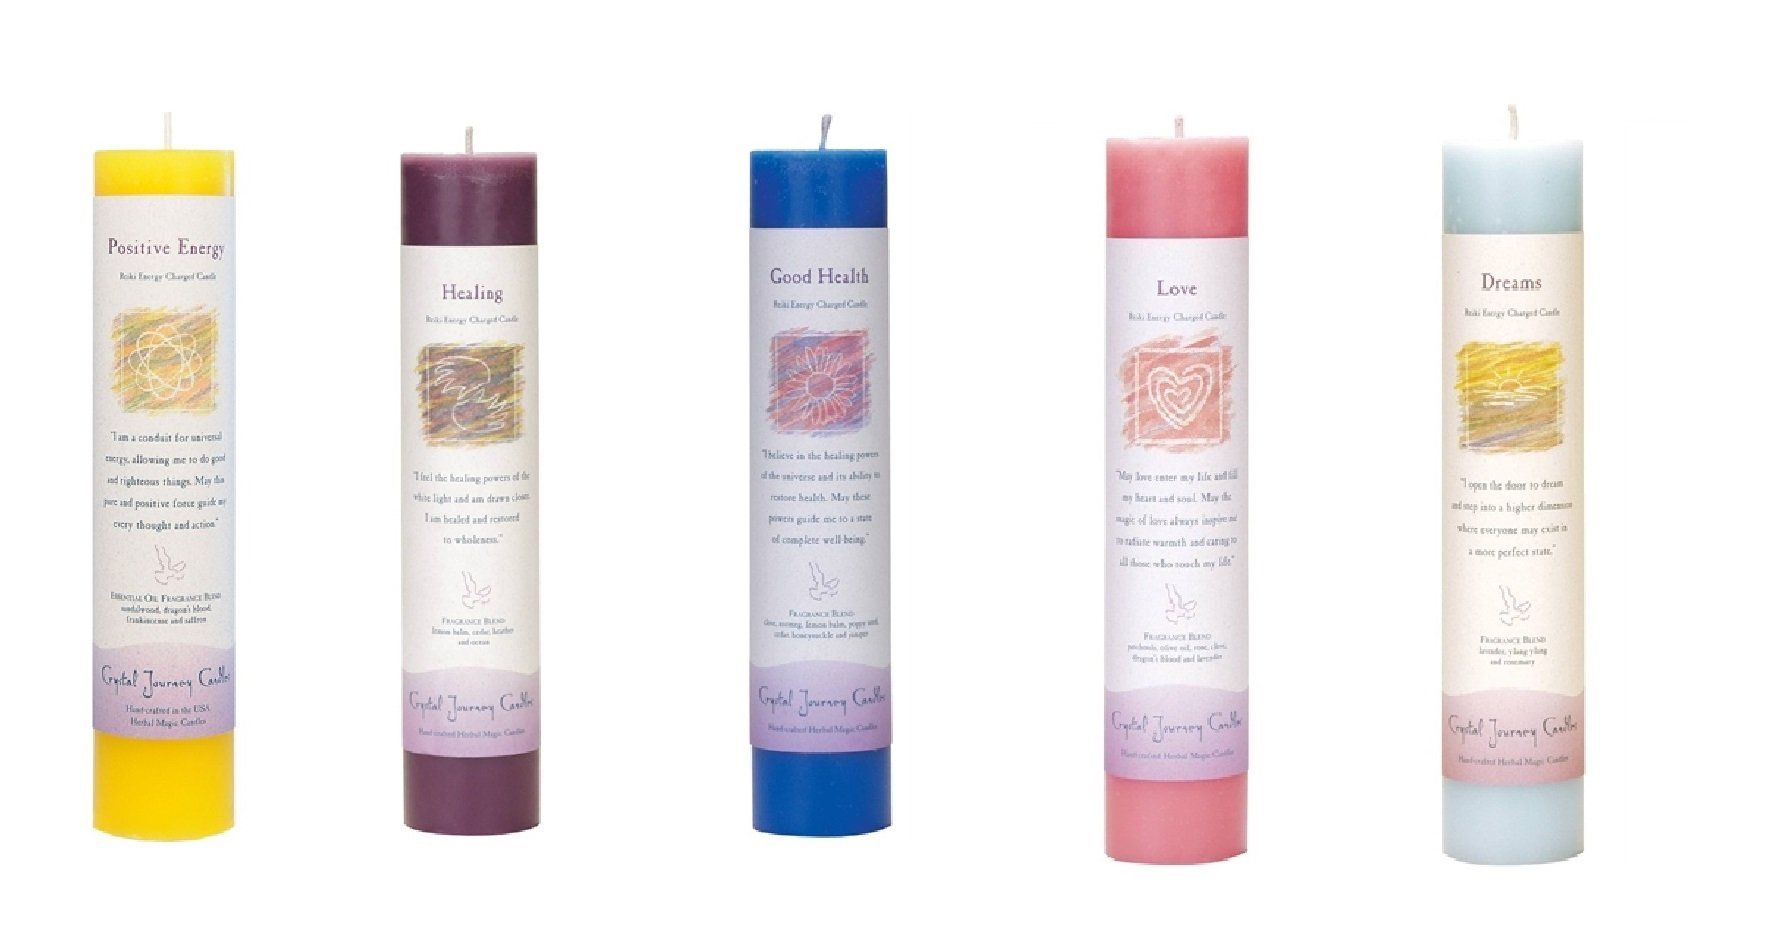 Crystal Journey Reiki Charged Herbal Magic Pillar Candle with Inspirational Labels - Bundle of 5 (Positive Energy, Healing, Good Health, Love, Dreams) Each 7''x1.5'' handcrafted with lead-free materials